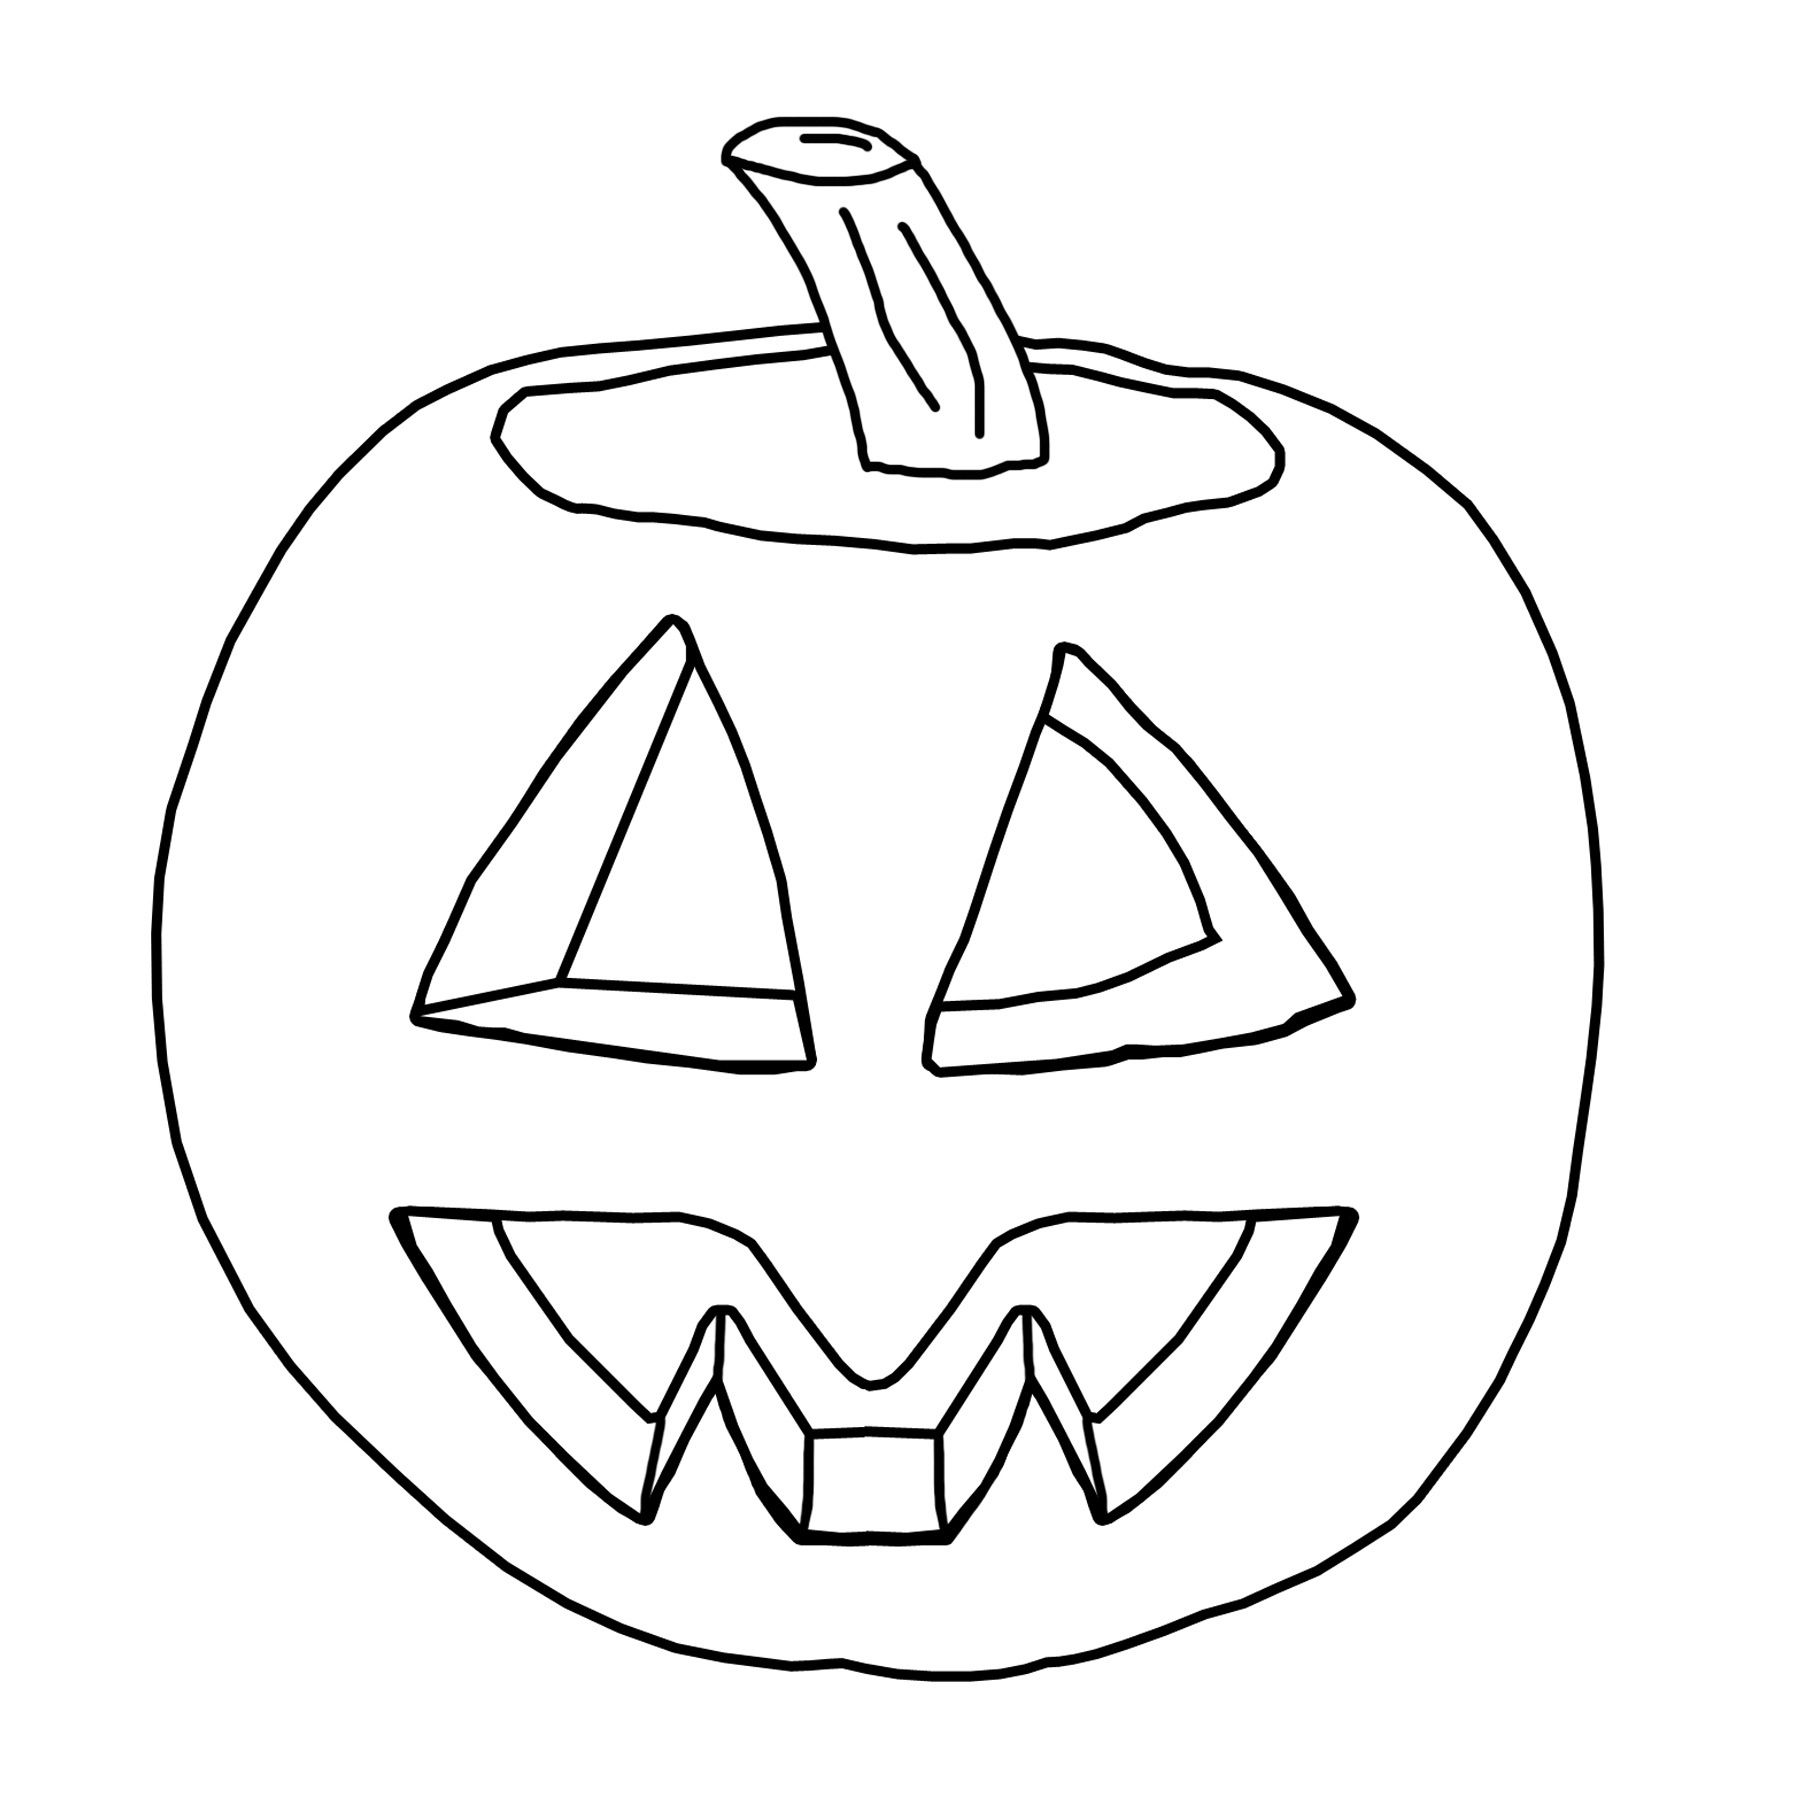 Happy Jack O Lantern Patterns